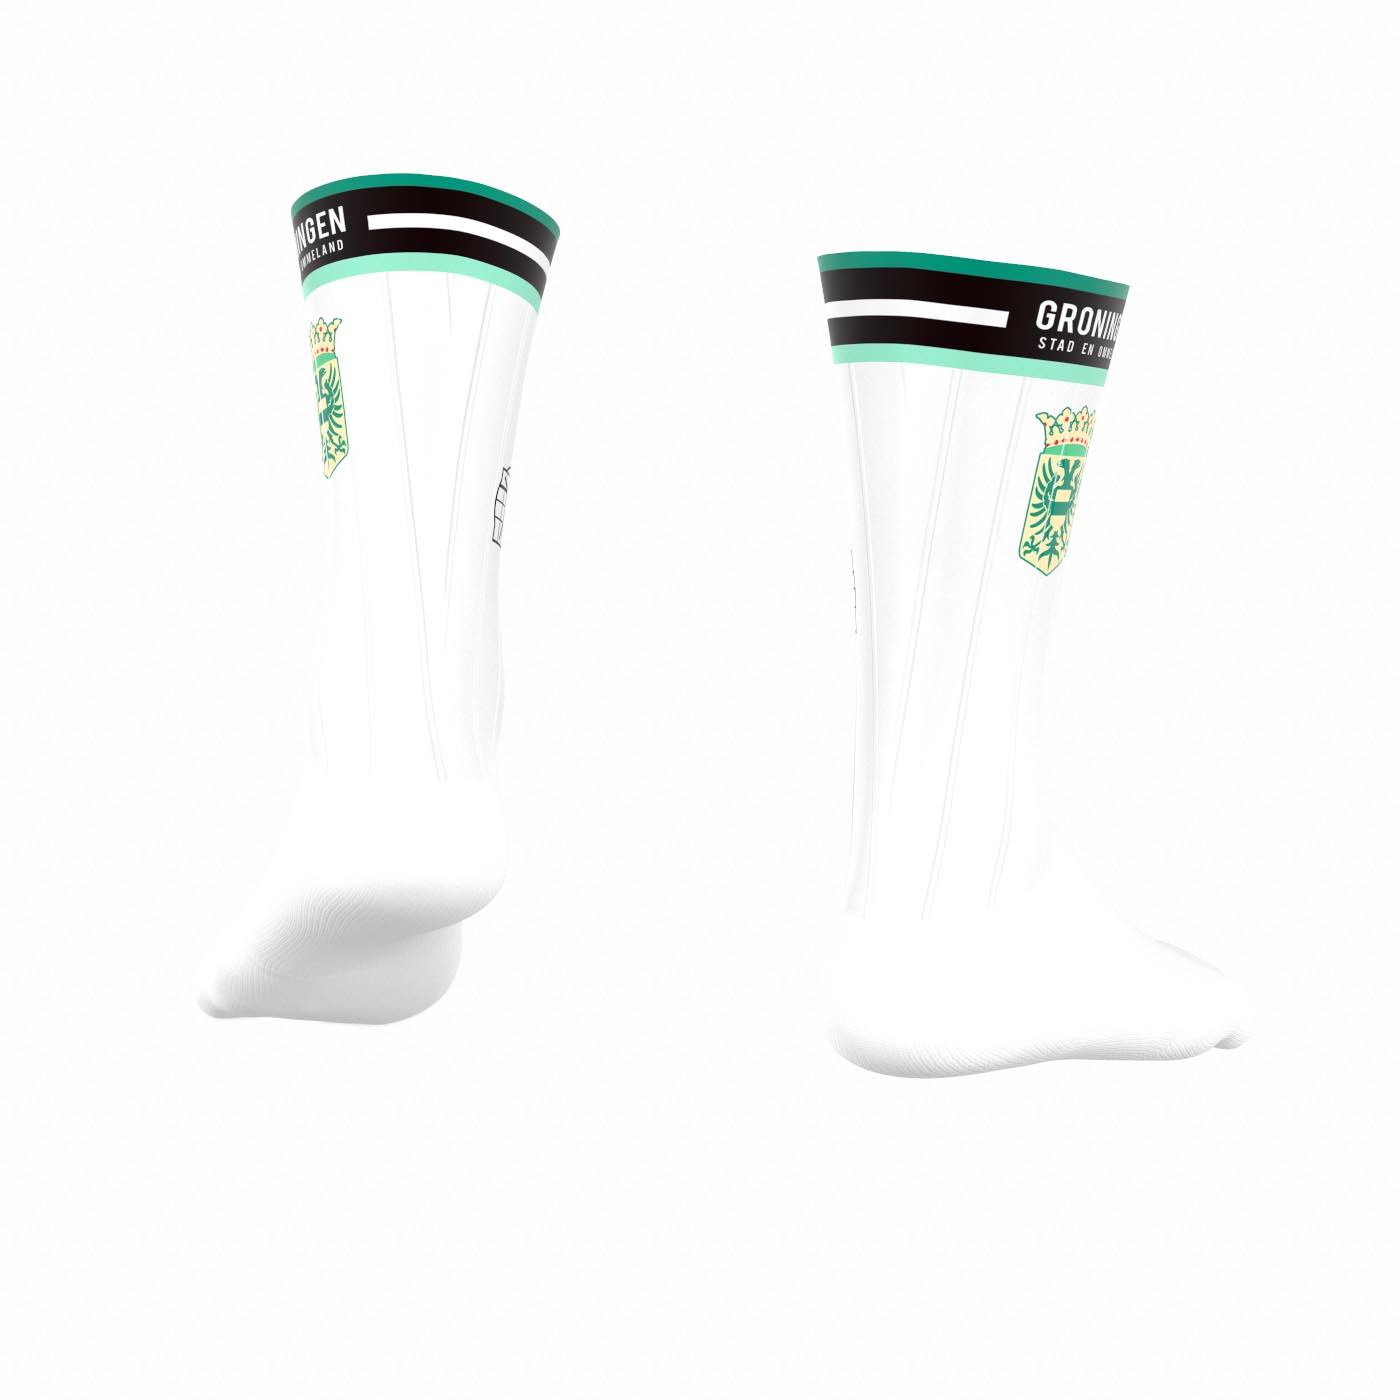 prj20-010121_acc-speedsocks_back